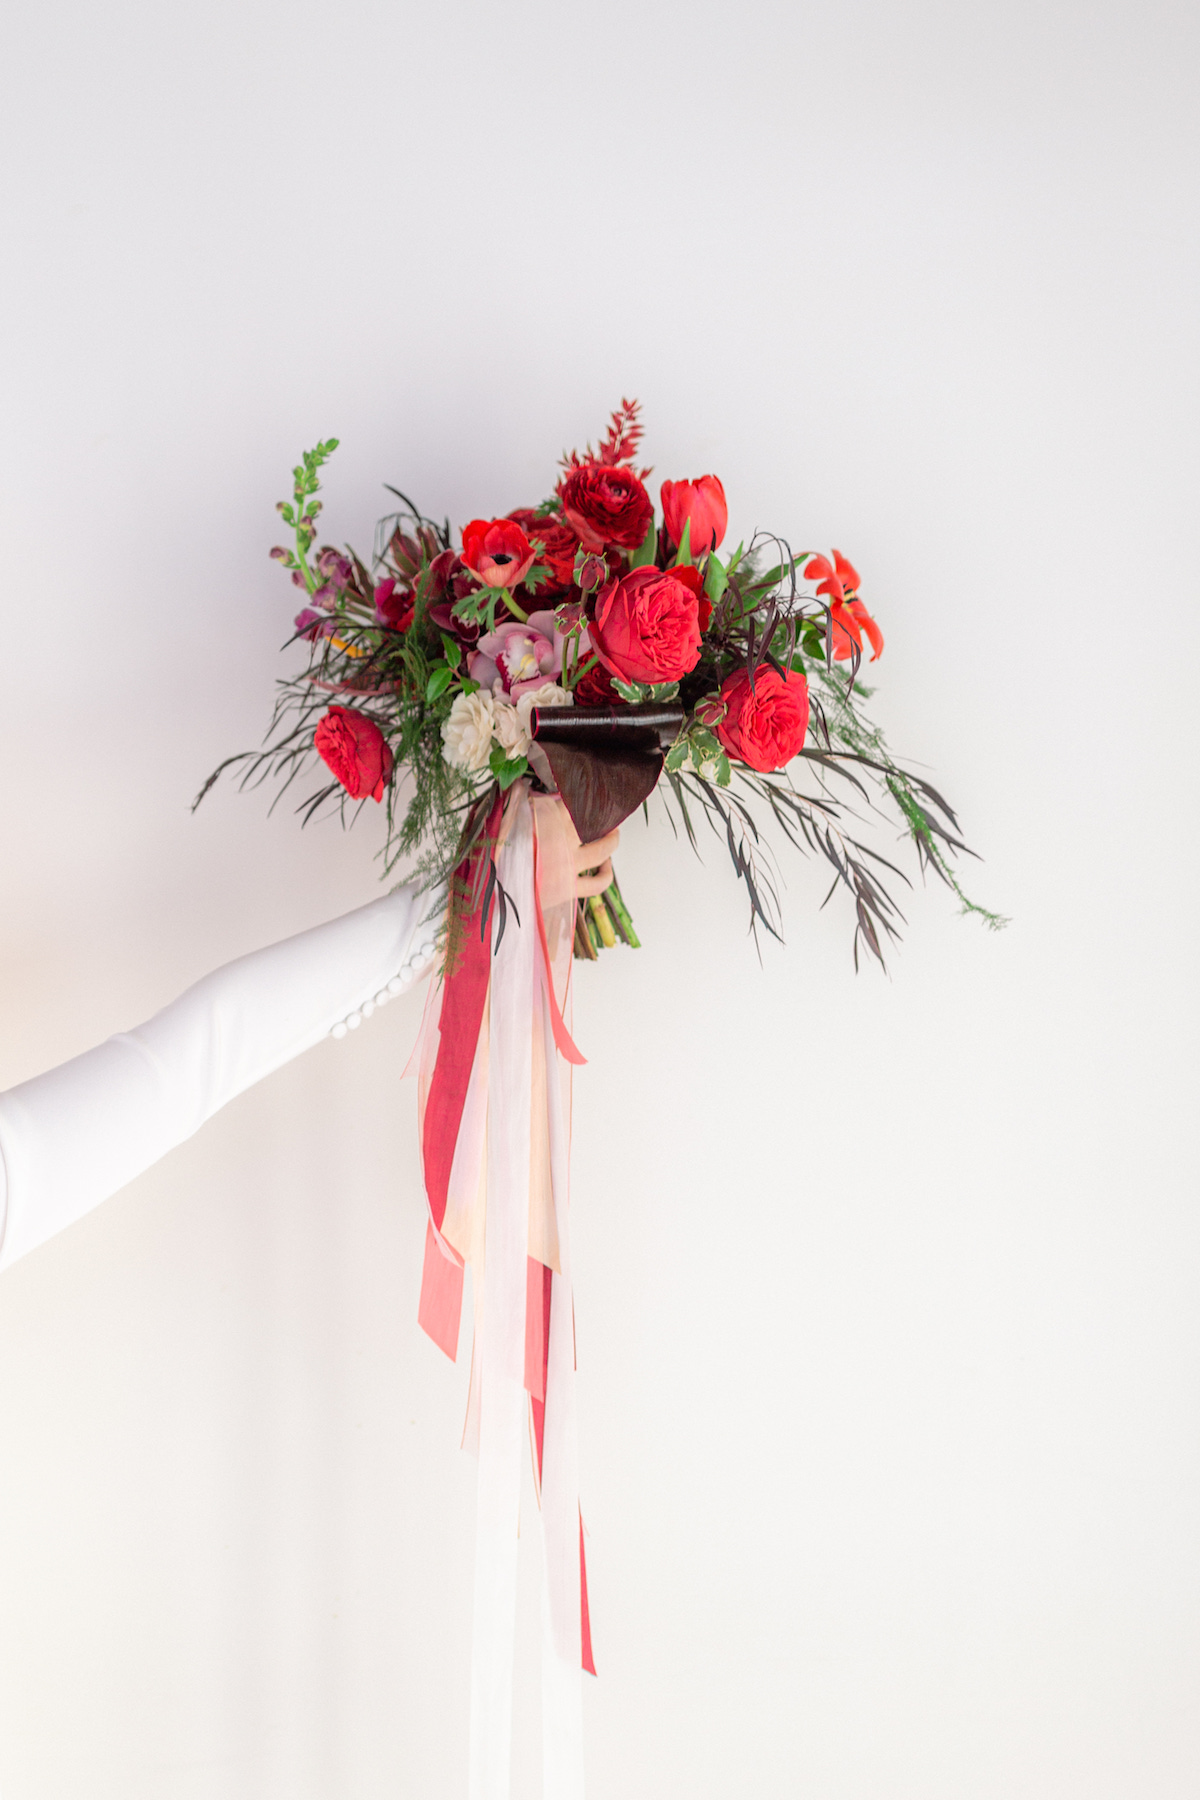 Red wedding bouquet - 5th Fine Art Photography